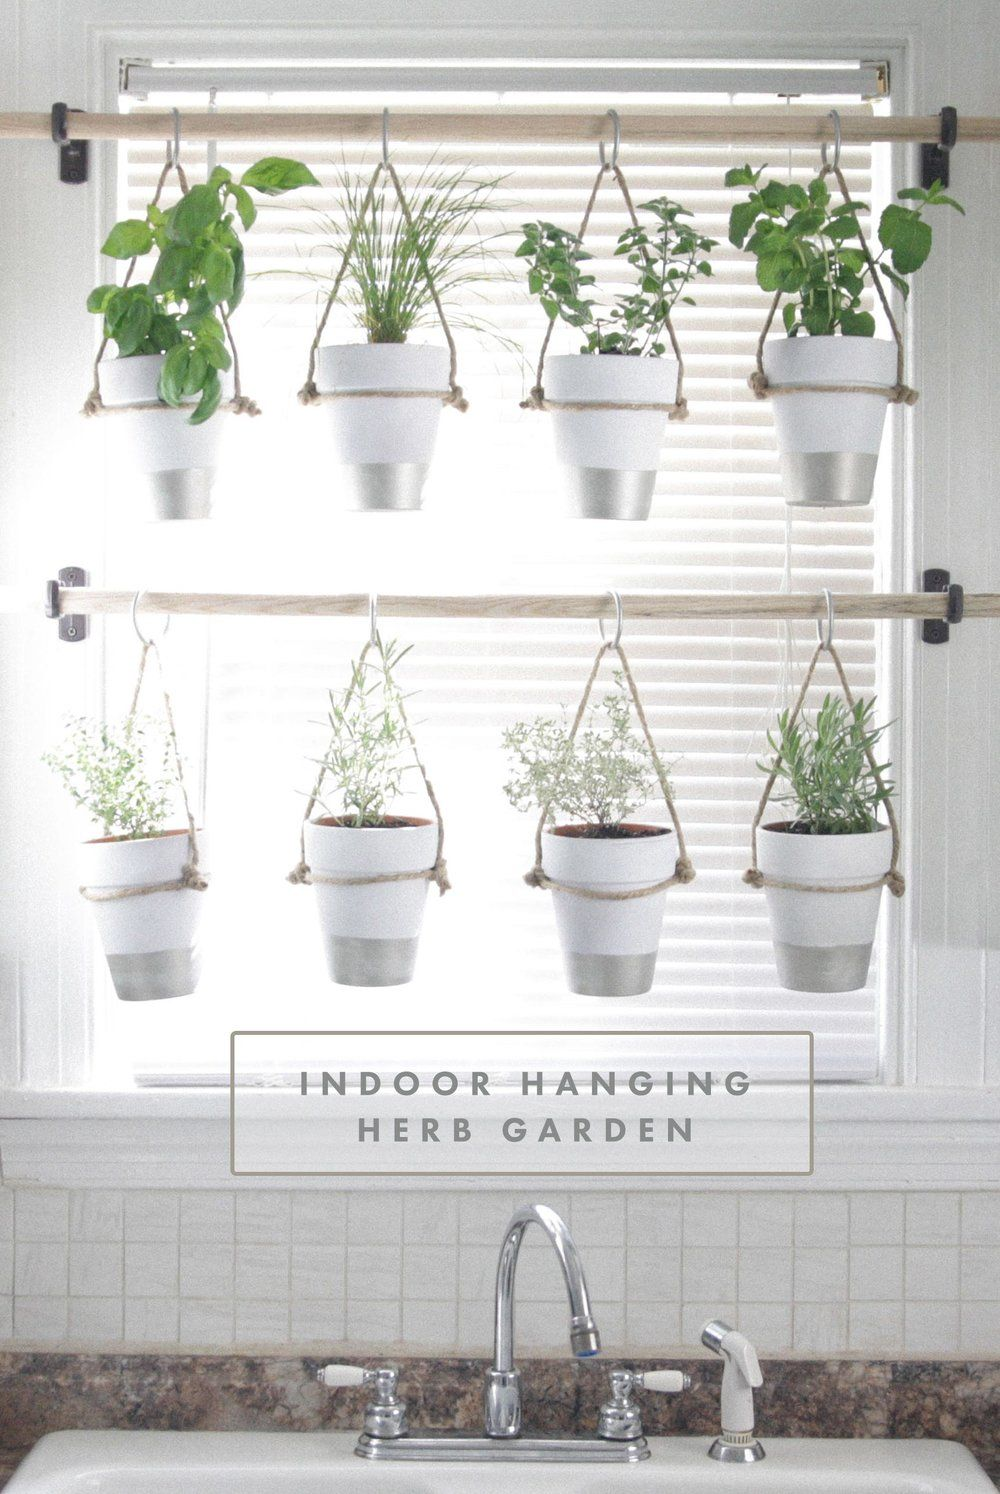 Diy indoor hanging herb garden learn how to make an - How to hang plants in front of windows ...